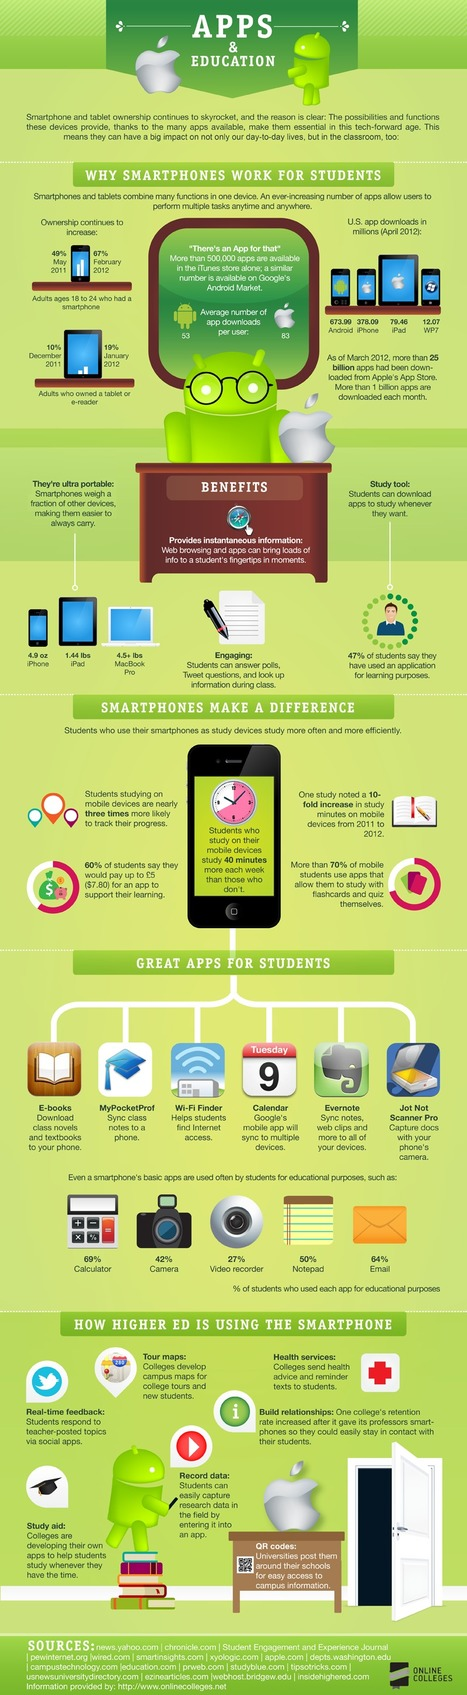 Trends | Infographic: Apps and Education | SocialMediaDesign | Scoop.it